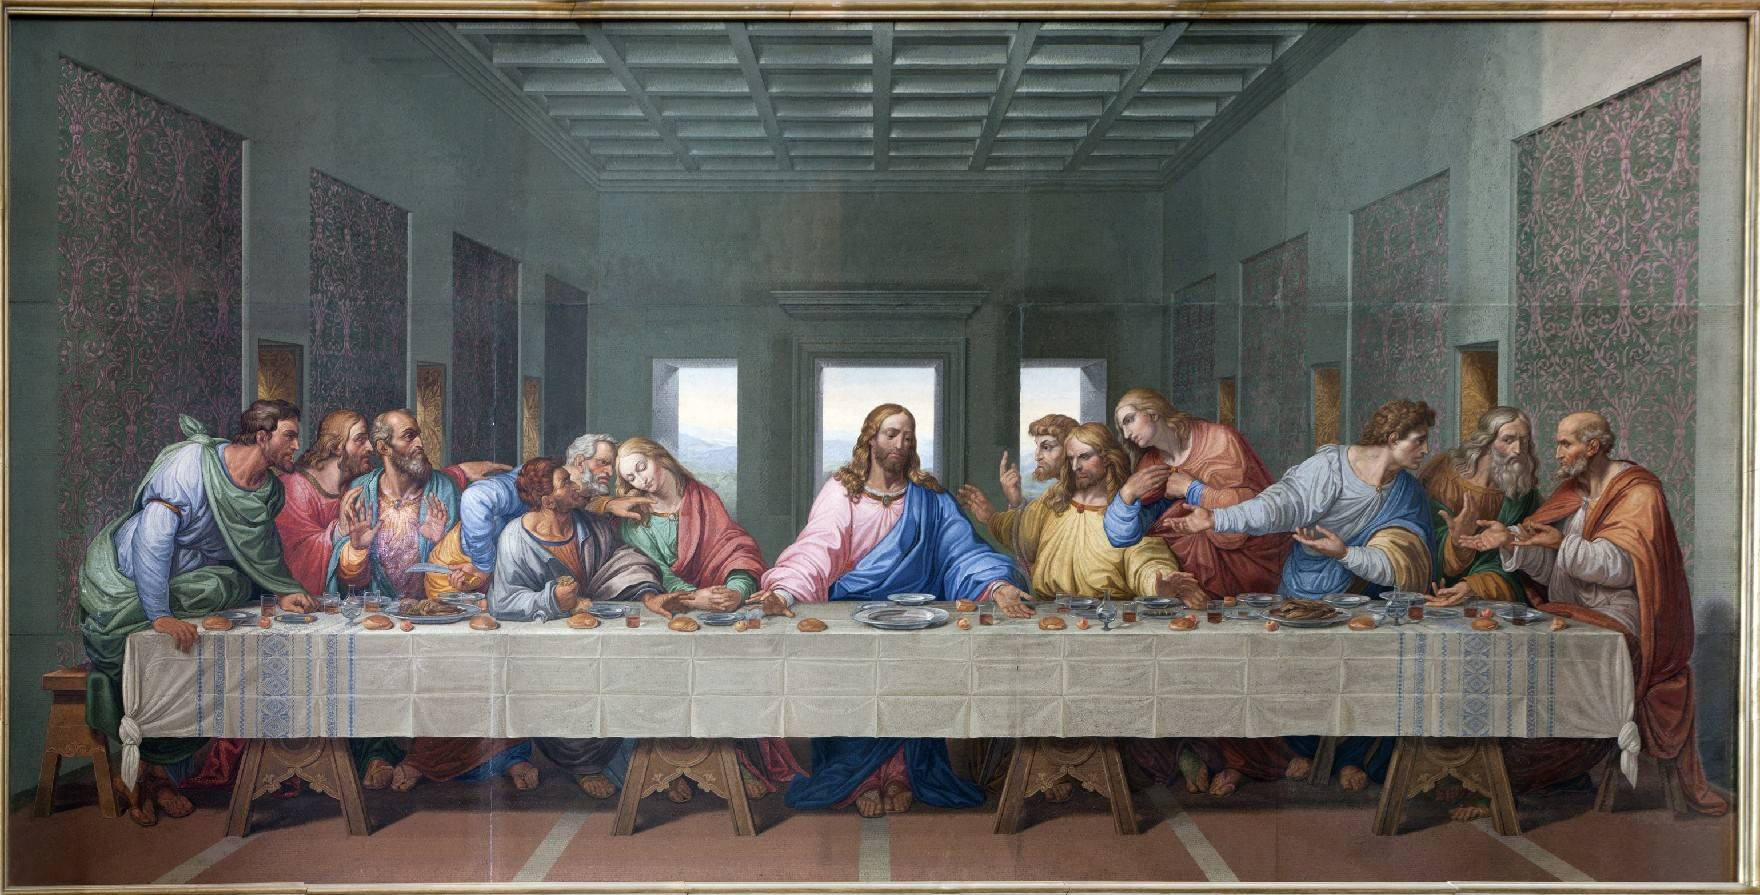 Adorable 60+ The Last Supper Wall Art Design Decoration Of Last Regarding Latest Last Supper Wall Art (View 2 of 20)